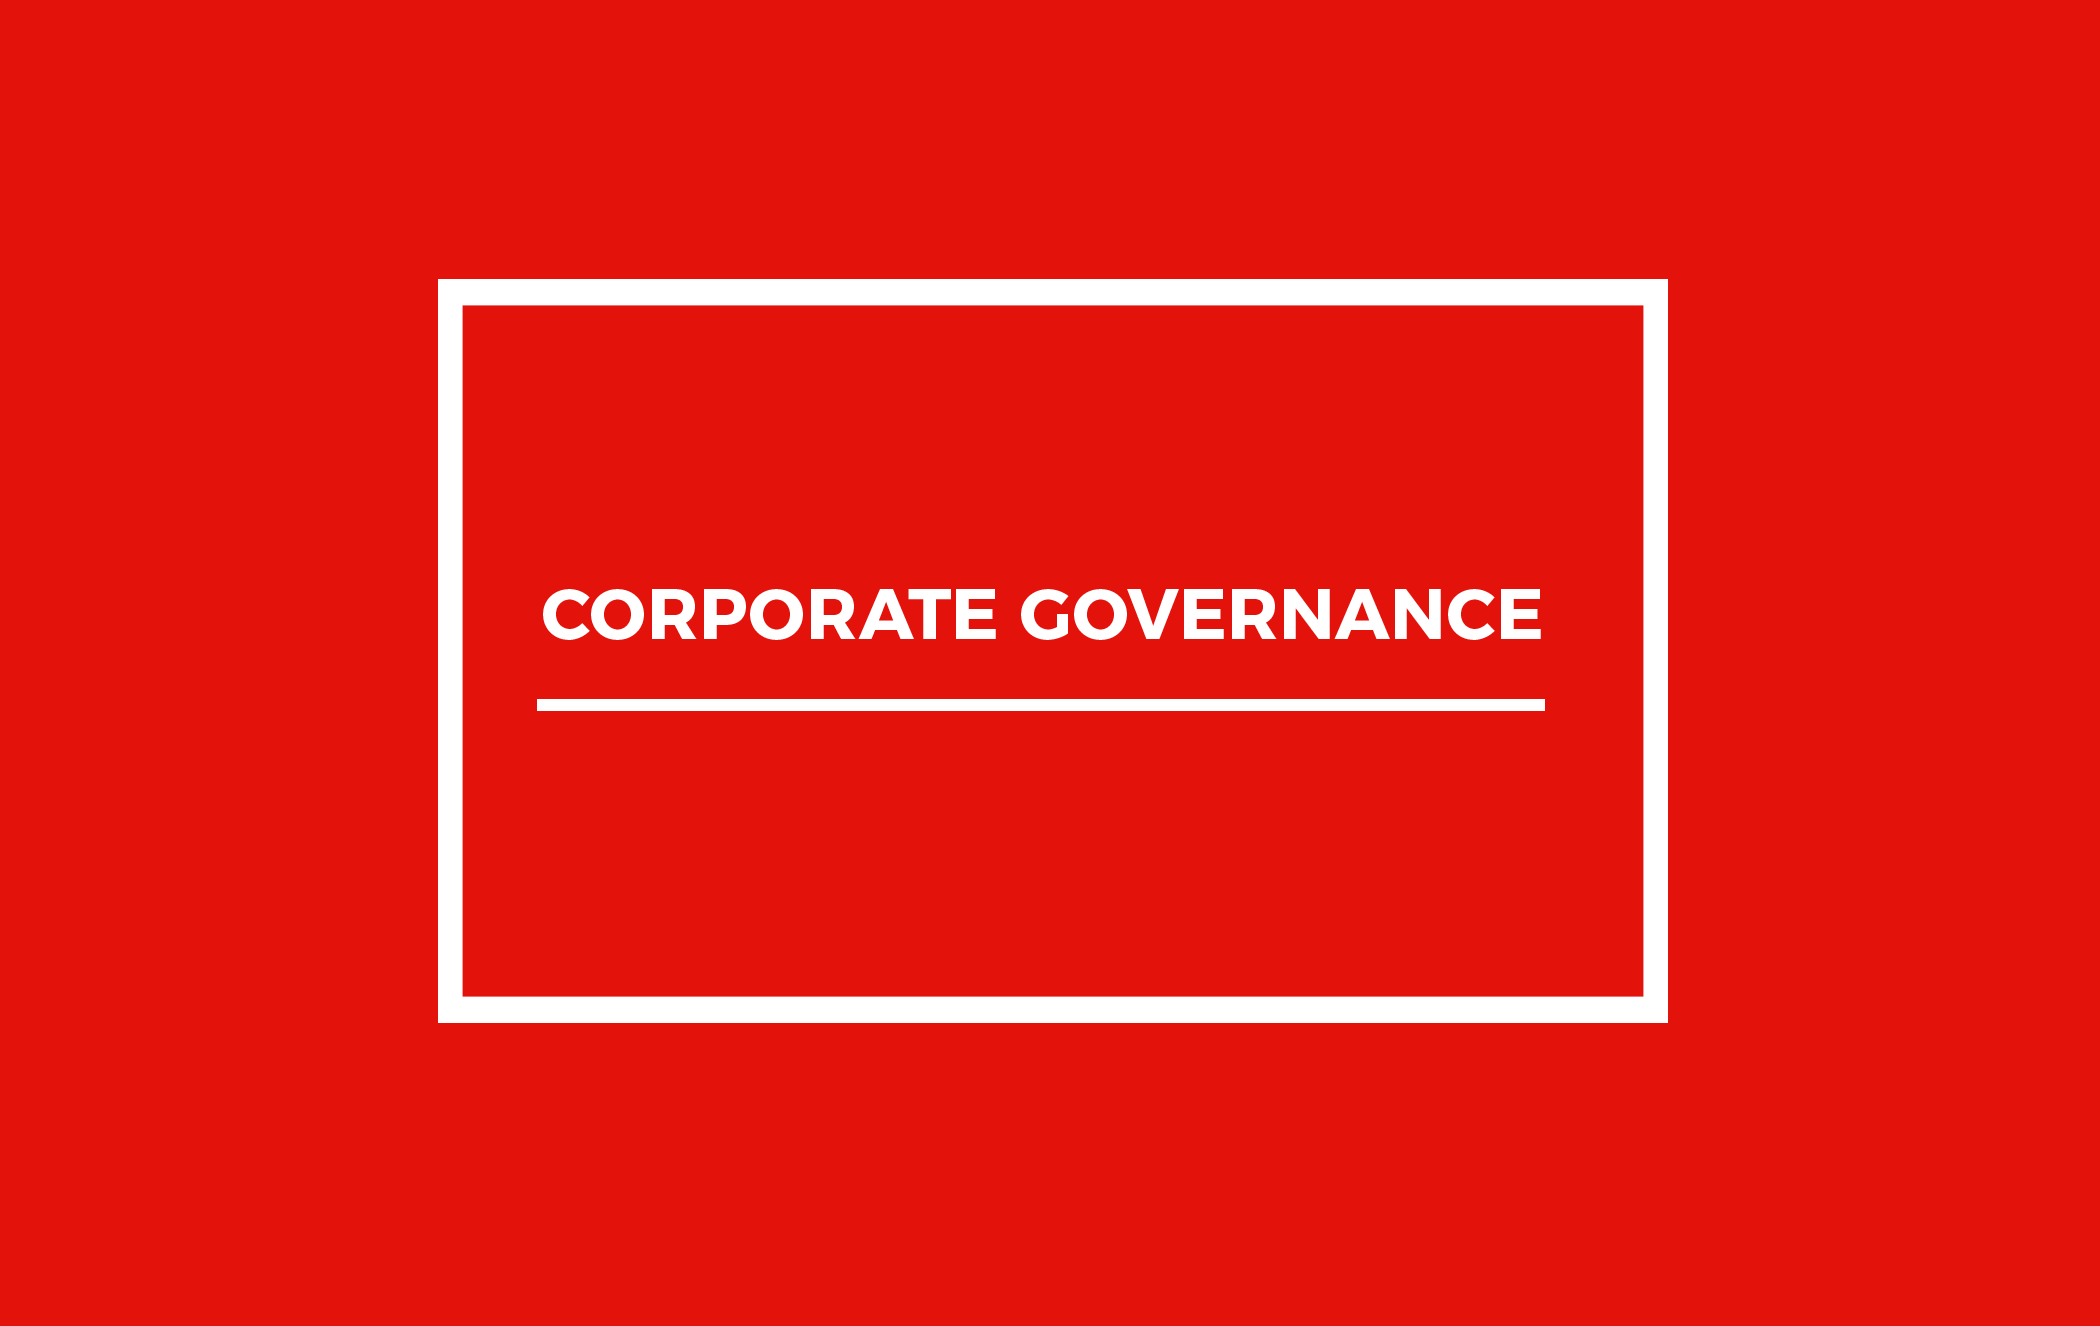 thesis corporate governance Ownership structure, corporate governance, and firm performance: evidence from turkey thesis submitted to the institute for graduate studies in the social sciences.